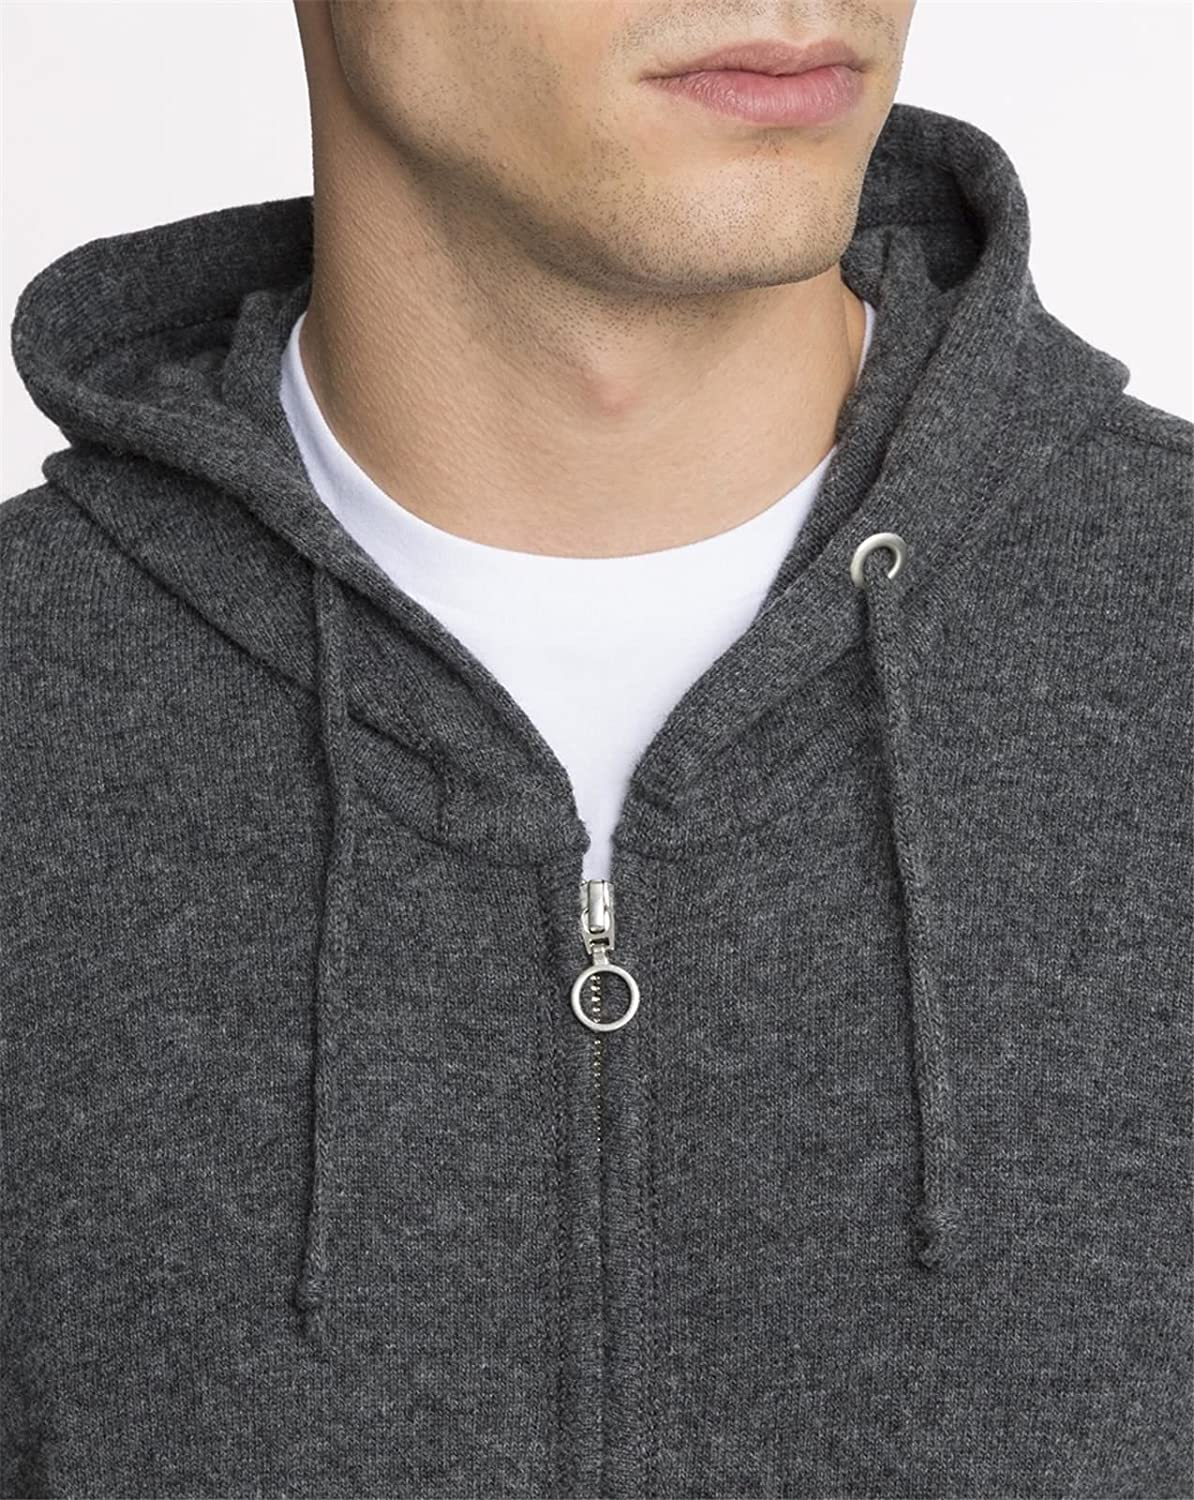 KNOWLEDGE COTTON APPAREL - Crew-neck Sweaters - Men - Grey Hooded Zip-Up Jumper for men